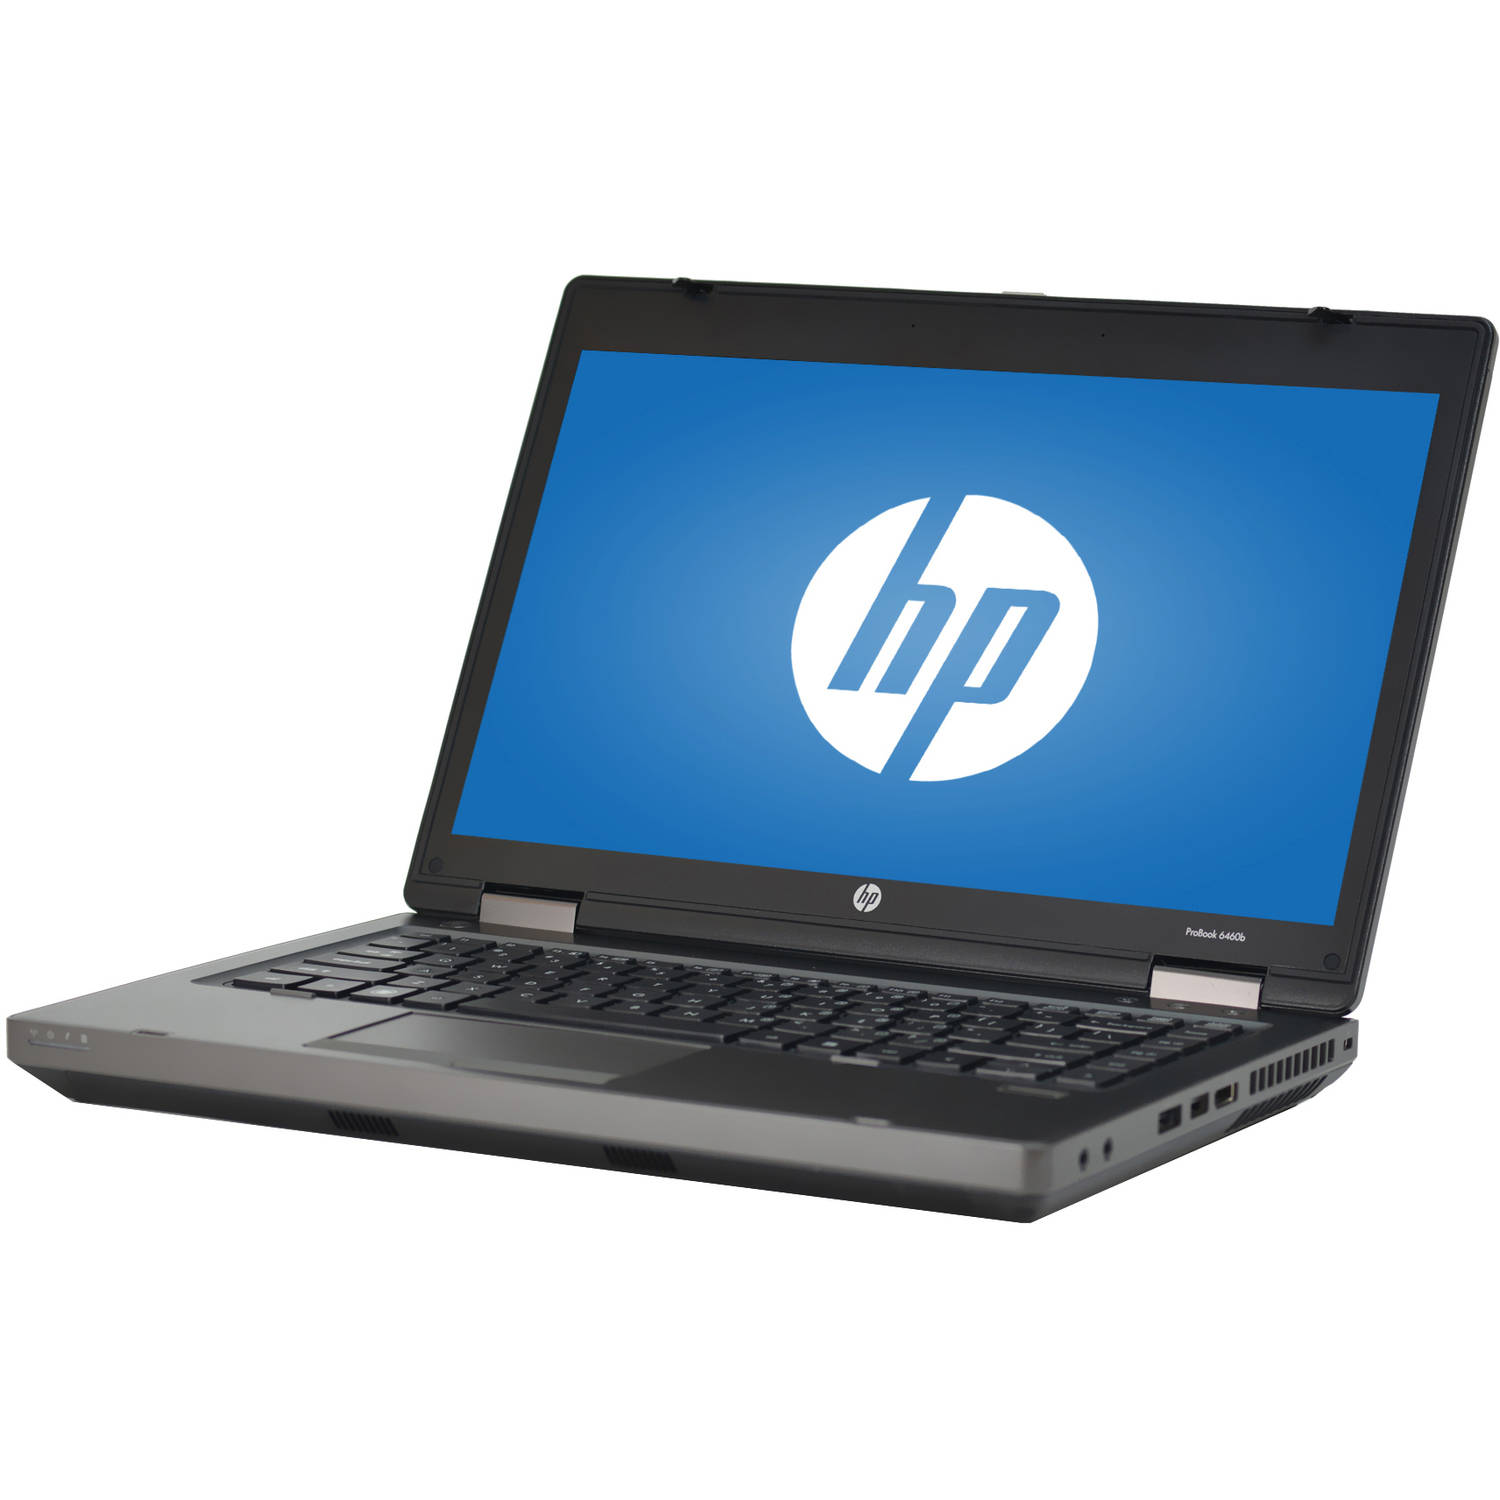 "Refurbished HP Silver 14"" ProBook 6460B WA5-0949 Laptop PC with Intel Core i5-2520M Processor, 8GB Memory, 128GB Solid State Drive and Windows 10 Home"